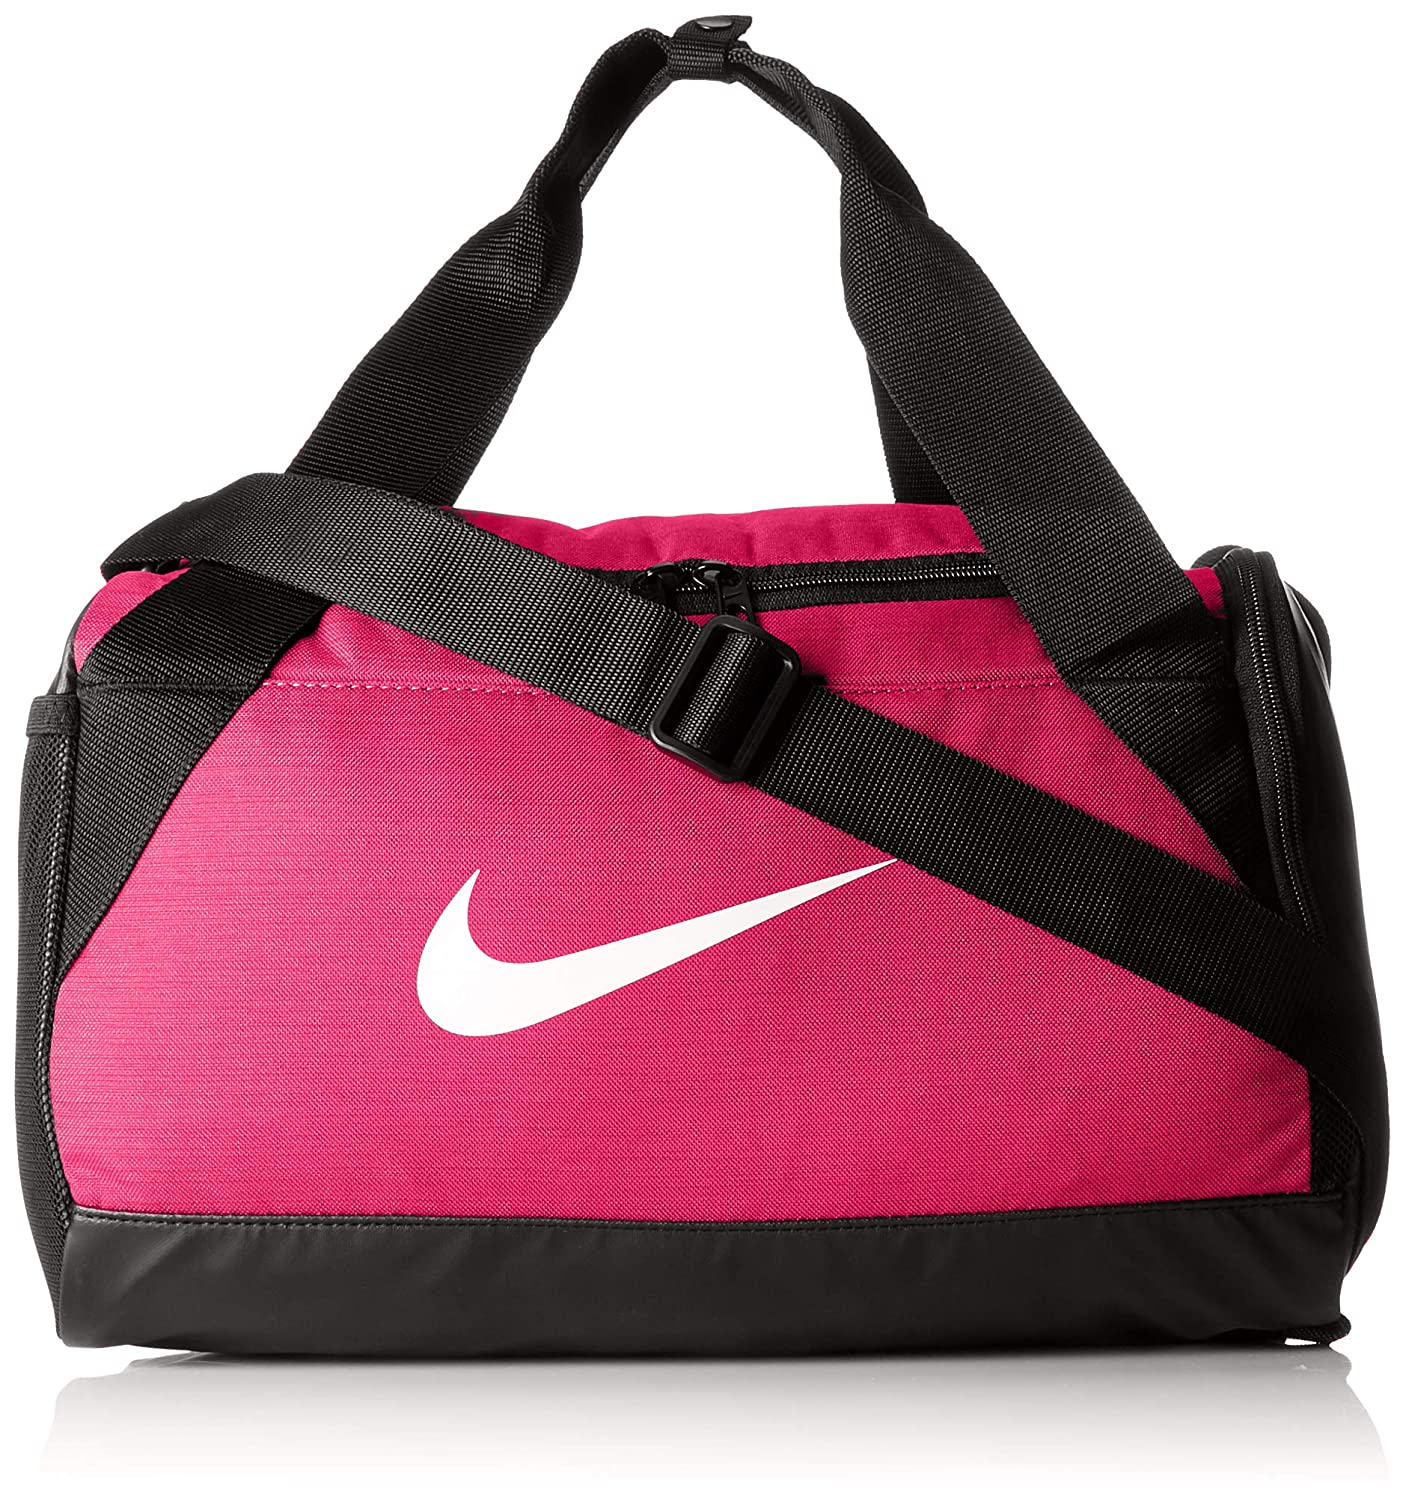 dd517f01fac2 Nike BA5432 - Sports Bag